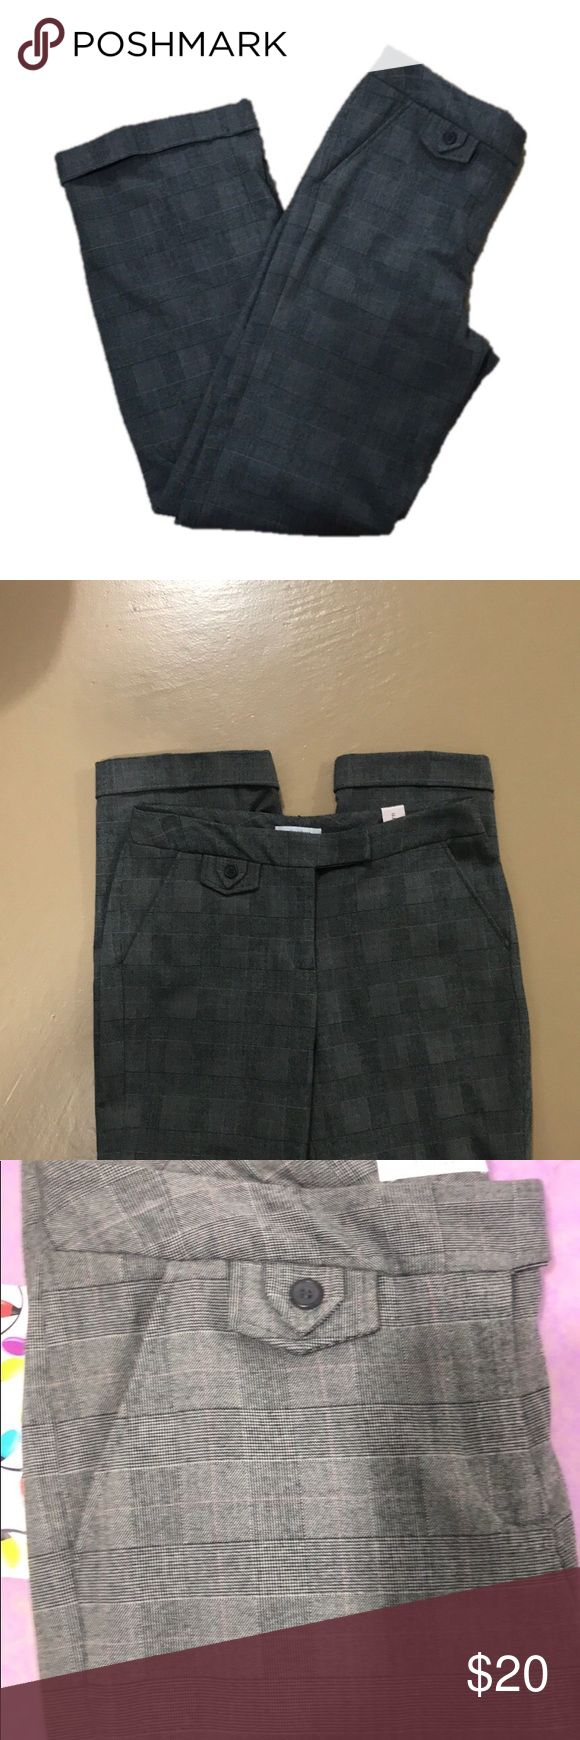 NWT Dress Barn Glen Plaid Grey Slacks size 8 NWT Dress Barn Ladies Glen Plaid Grey Dress pants, size 8. Small, non, functional but very cute pocket at the waistline. Cuffed hems. Clasp and zipper both are intact and work well. The inside button has fallen off but the replacement button is still attached with the tags. Two functional pockets. These slacks are very classy. Measurements are available upon request and are approximate. Bundle for more savings and I'm open to offers. Dress Barn…